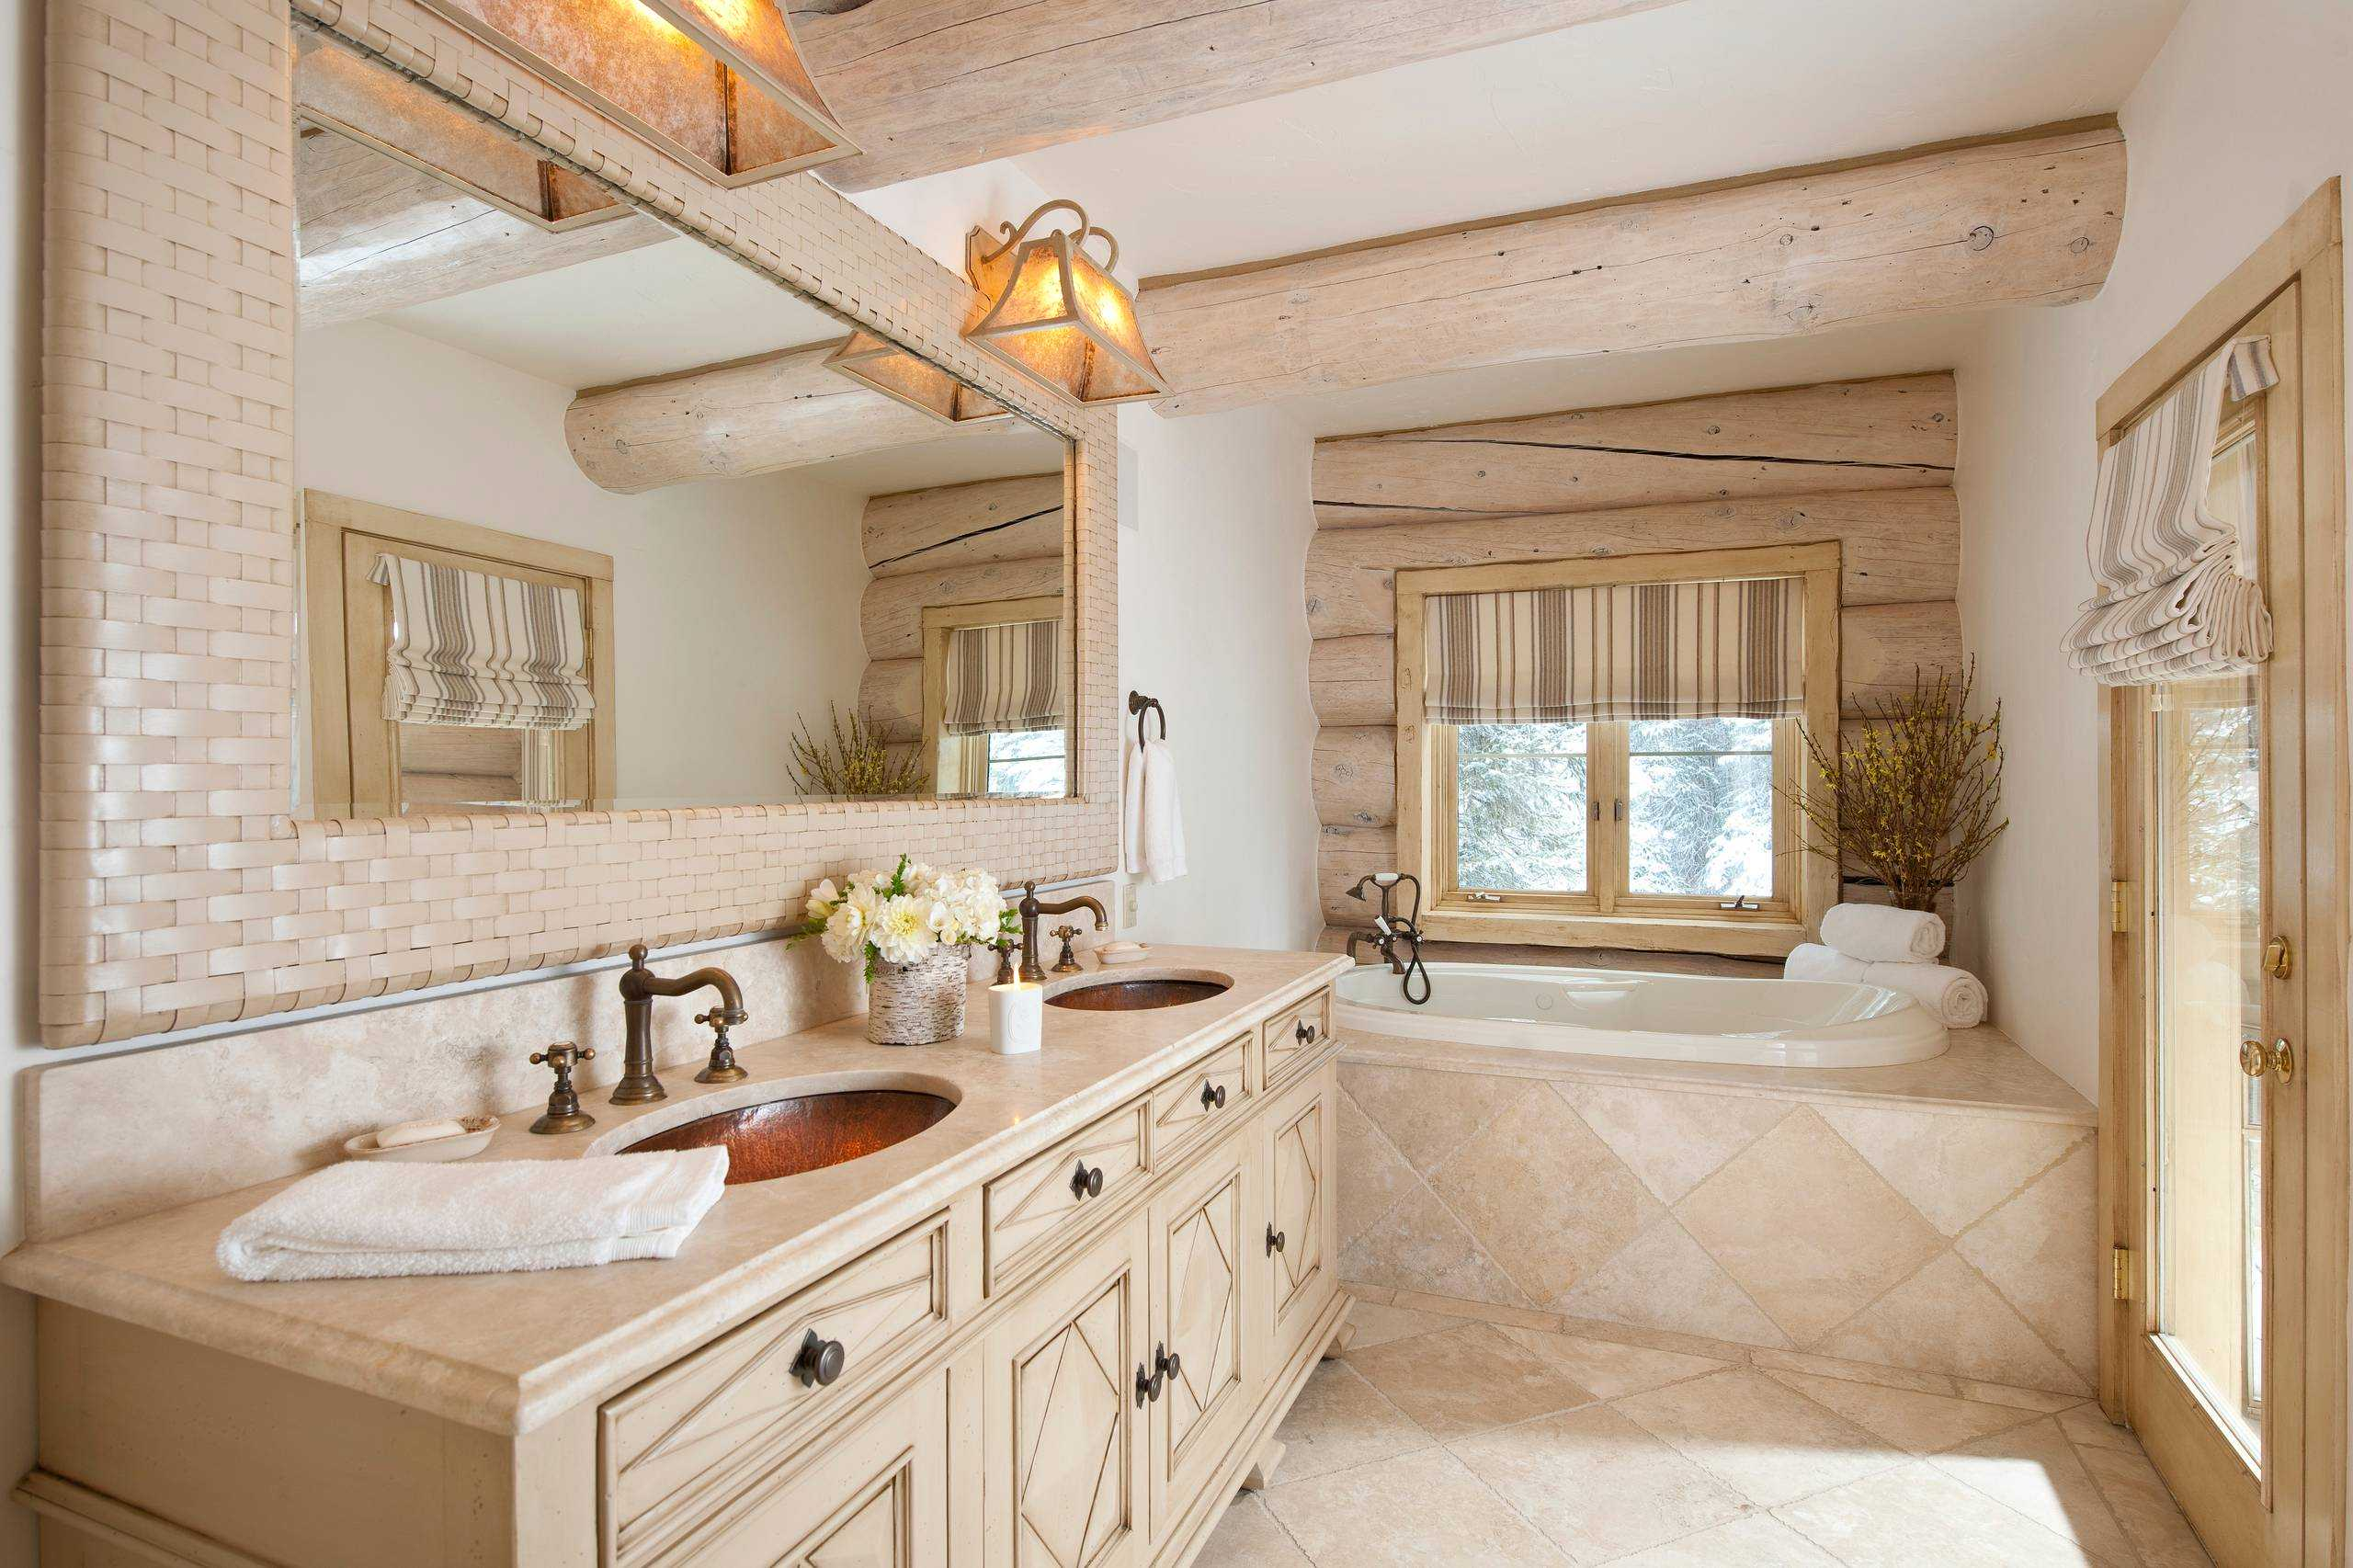 Fantastic Rustic Bathroom Designs That Will Take Your Breath Away